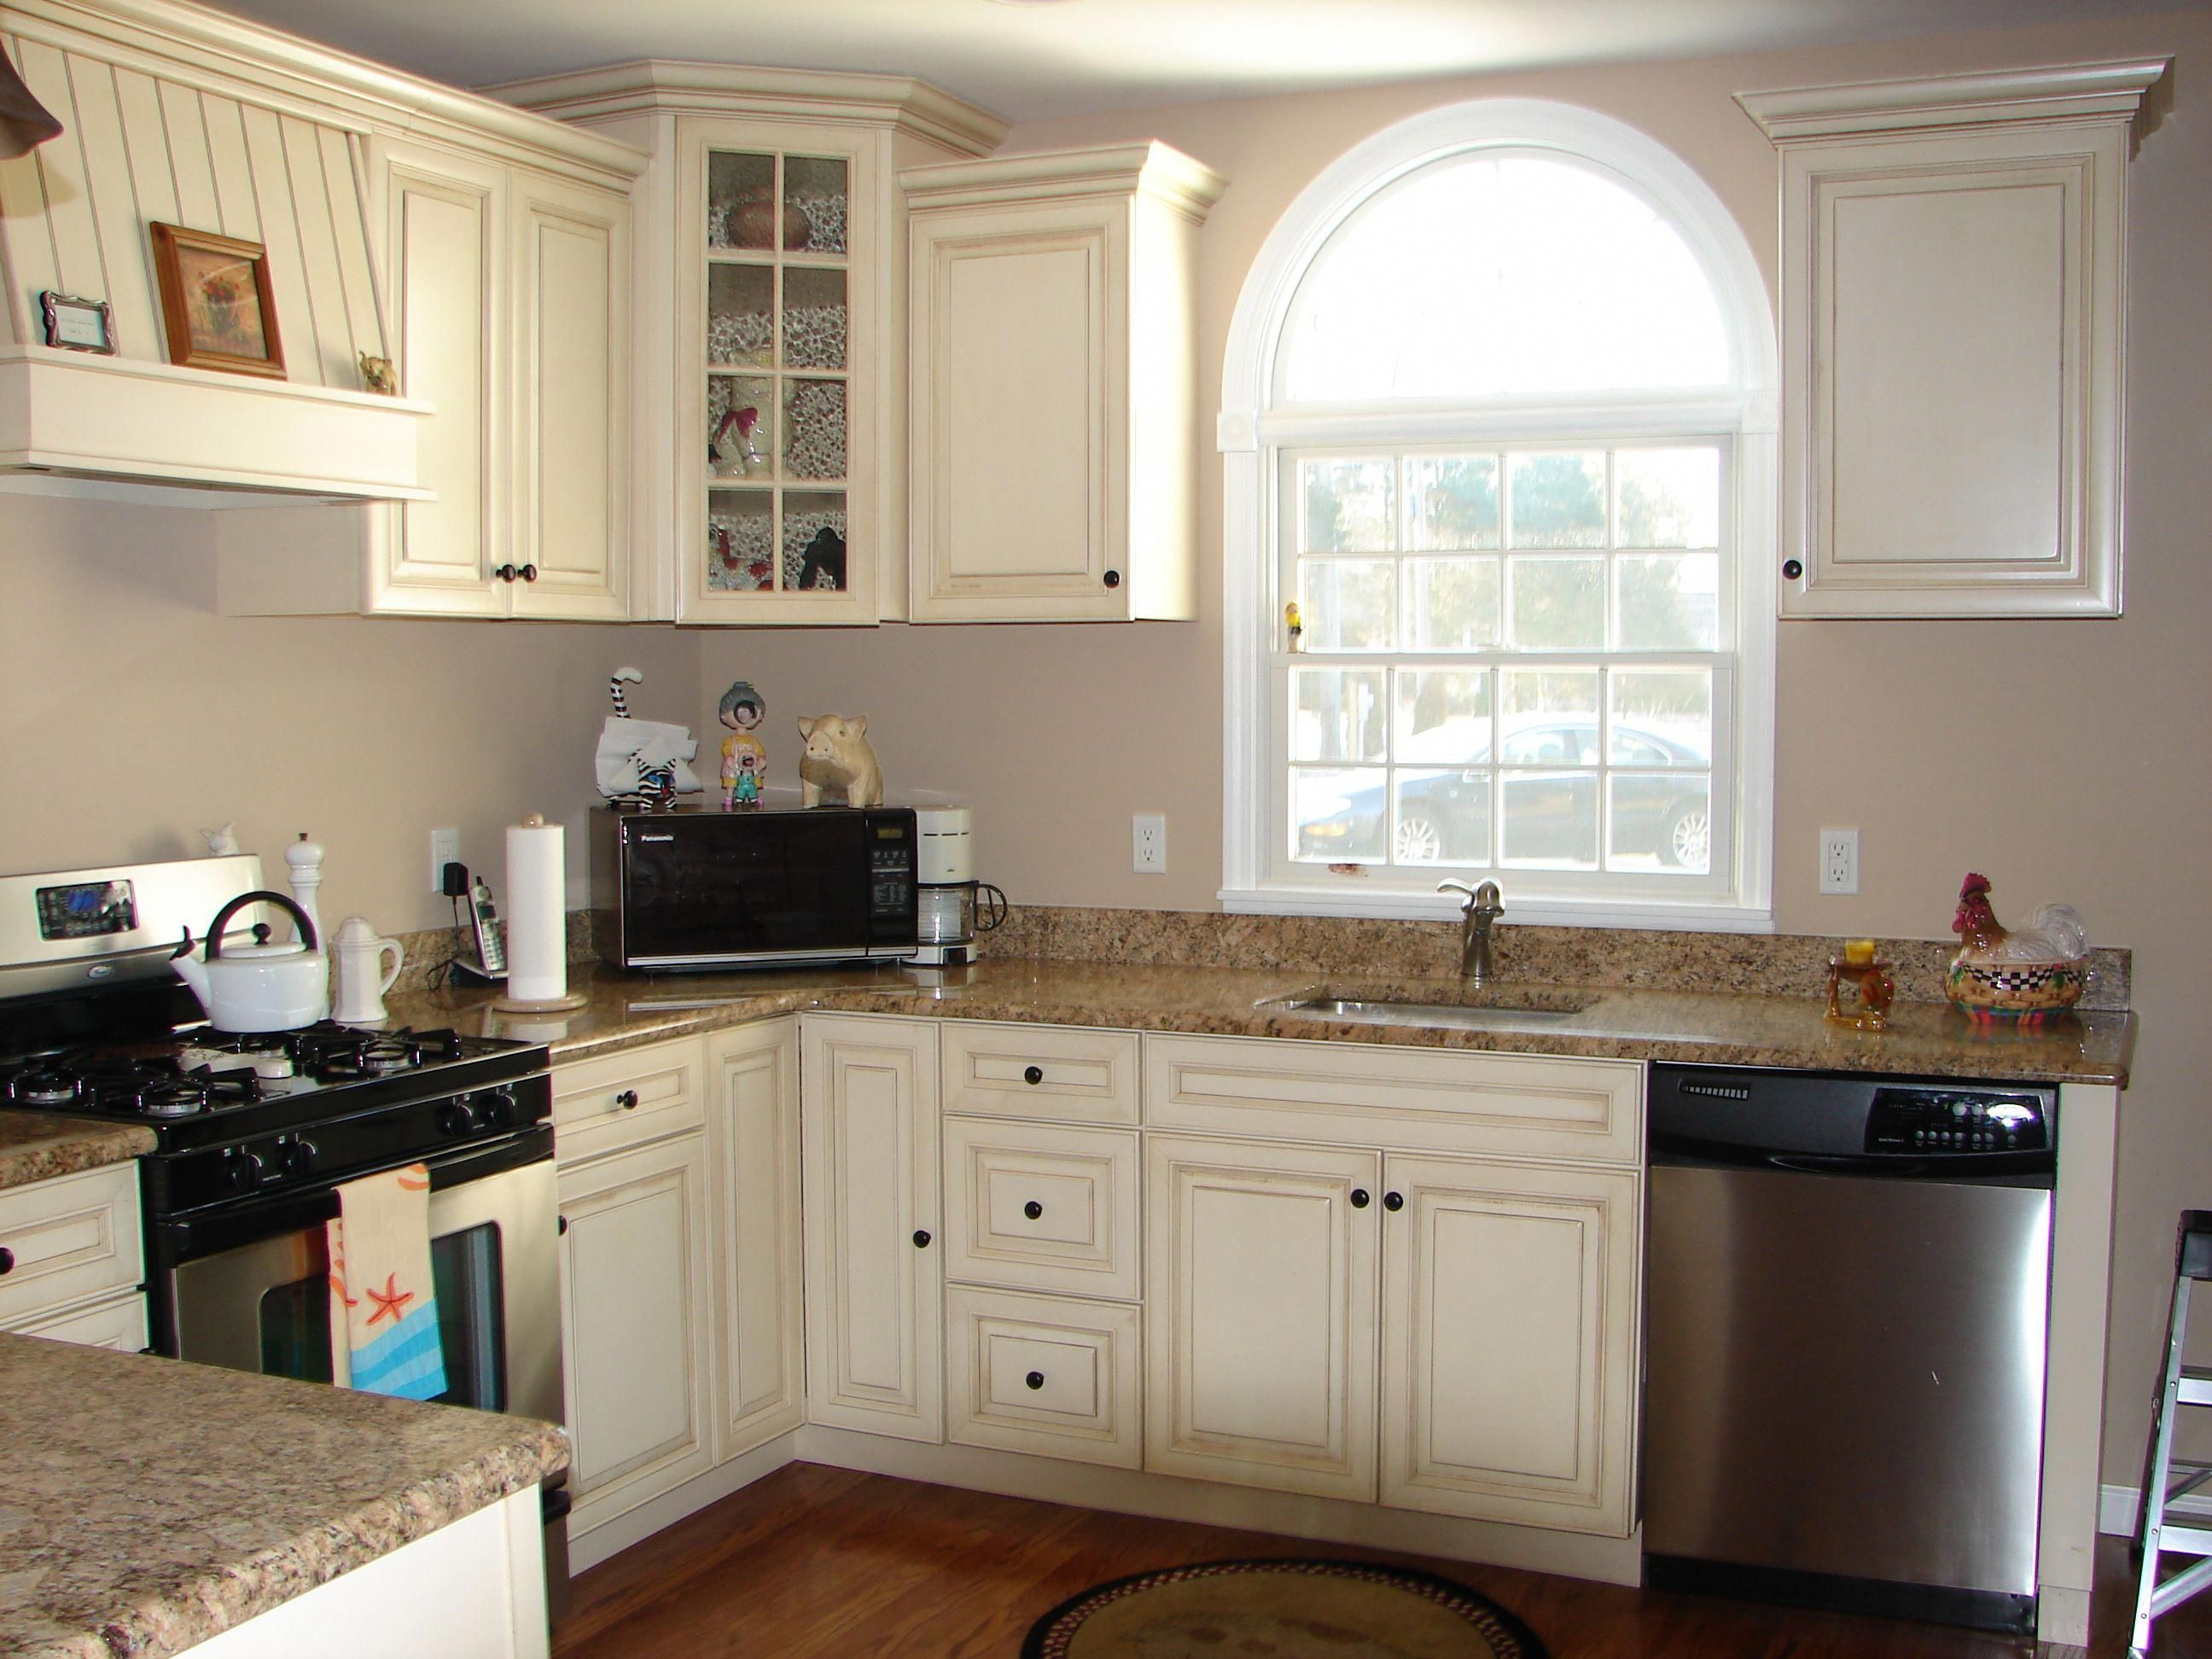 Cool Antique Kitchen Cabinets Grey Kitchen Walls Cream Colored Kitchen Cabinets Paint For Kitchen Walls